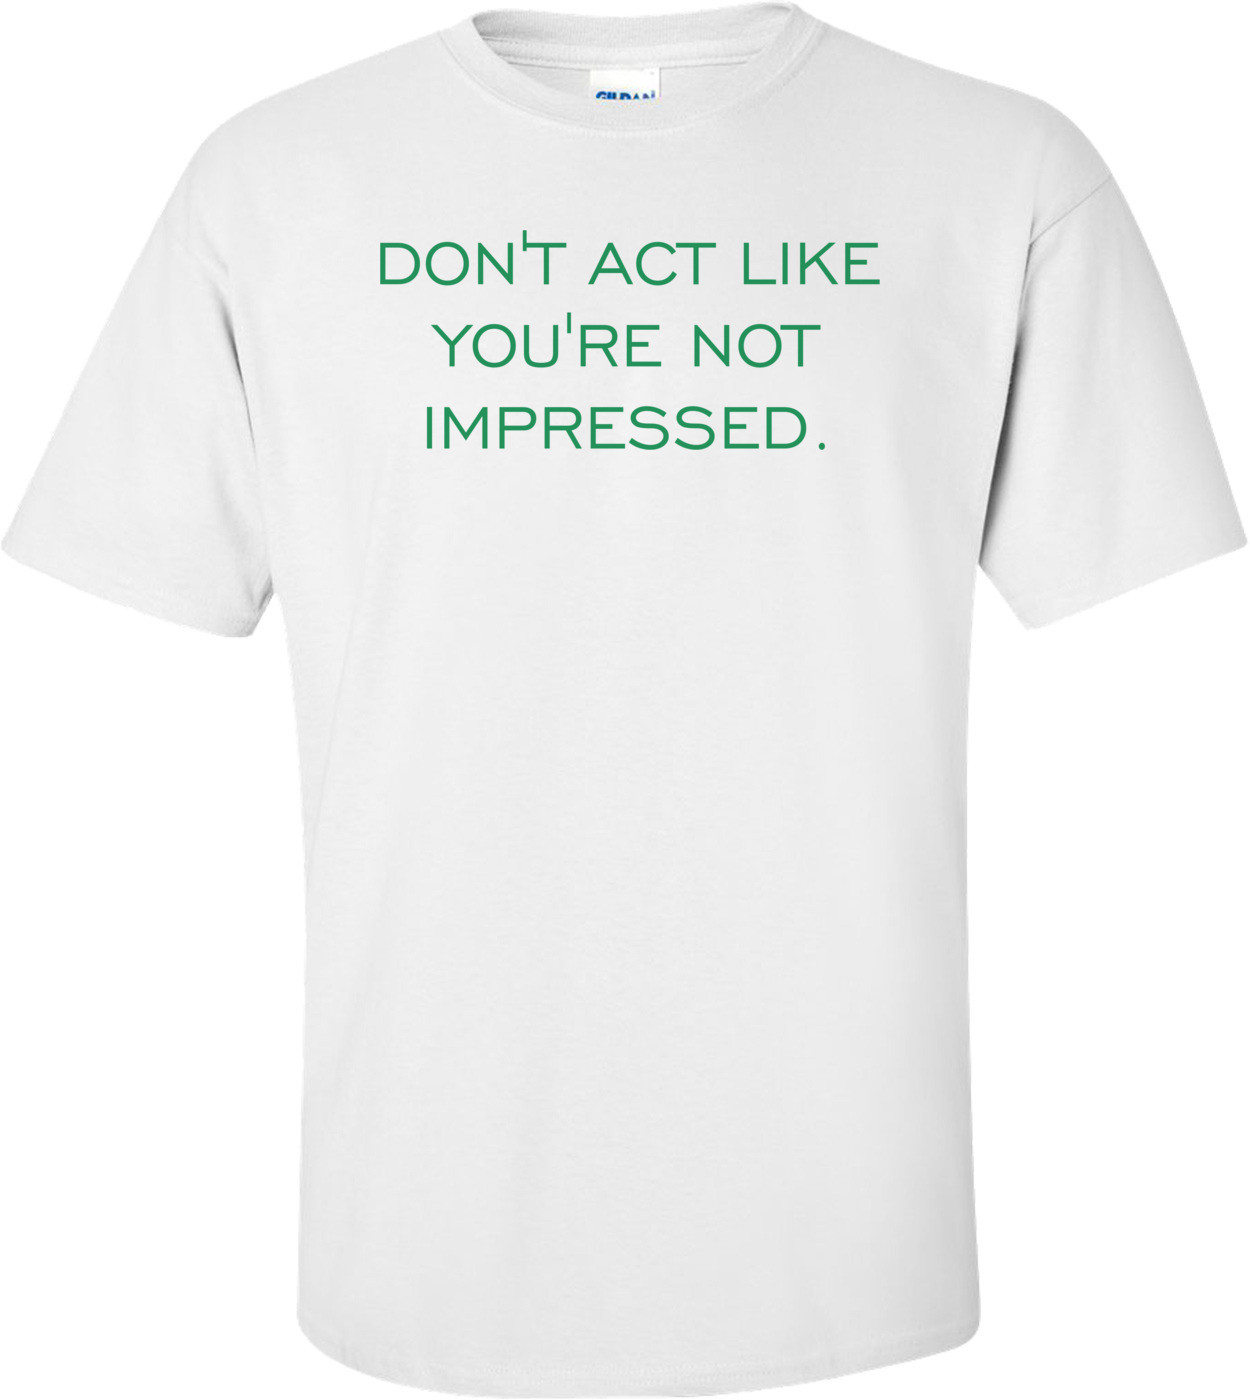 DON'T ACT LIKE YOU'RE NOT IMPRESSED. Shirt